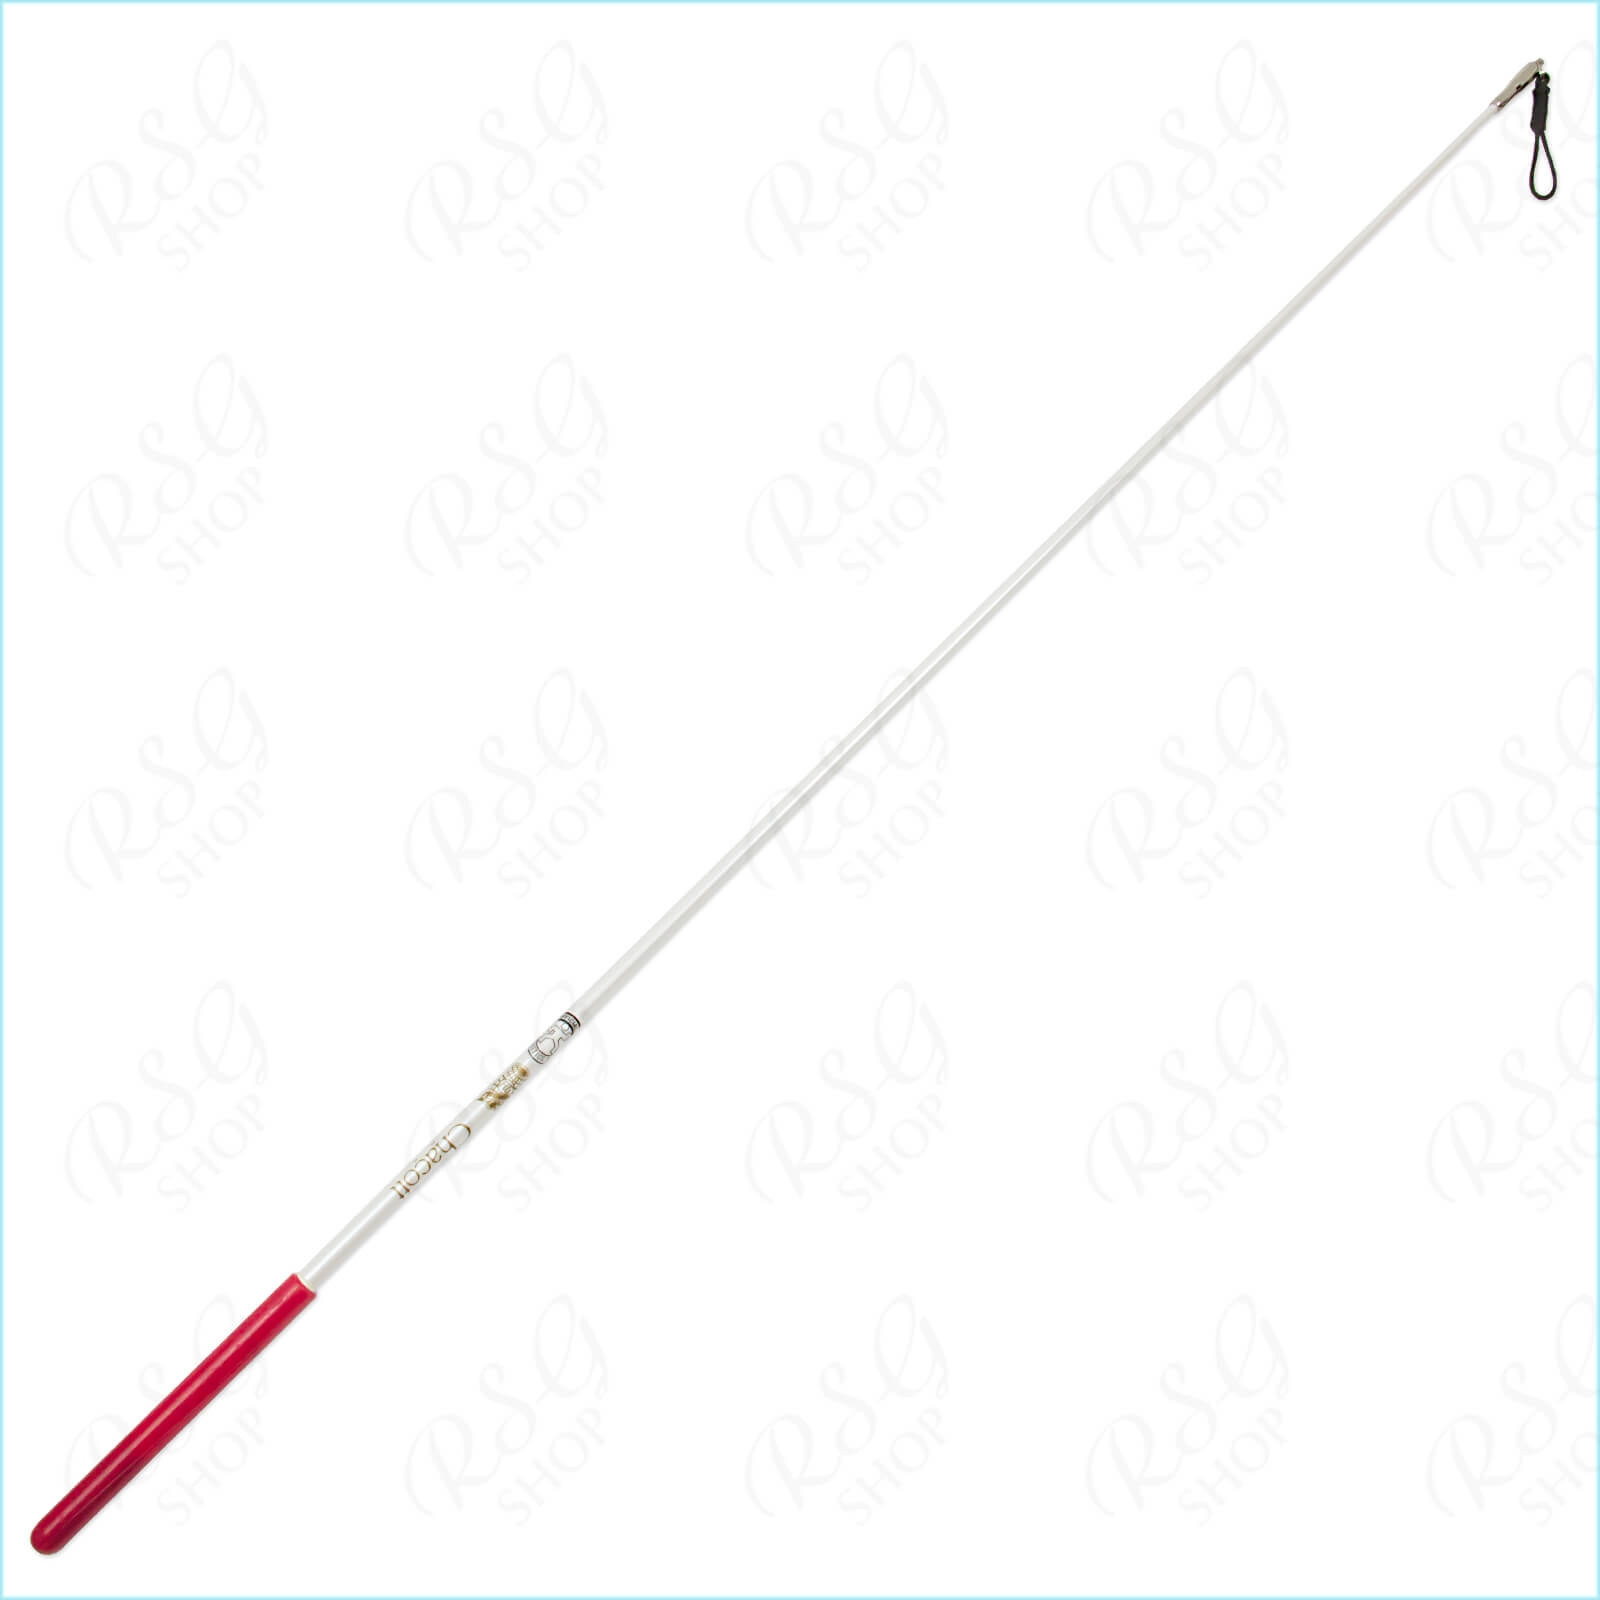 stab_chacott_carbon_60cm_red